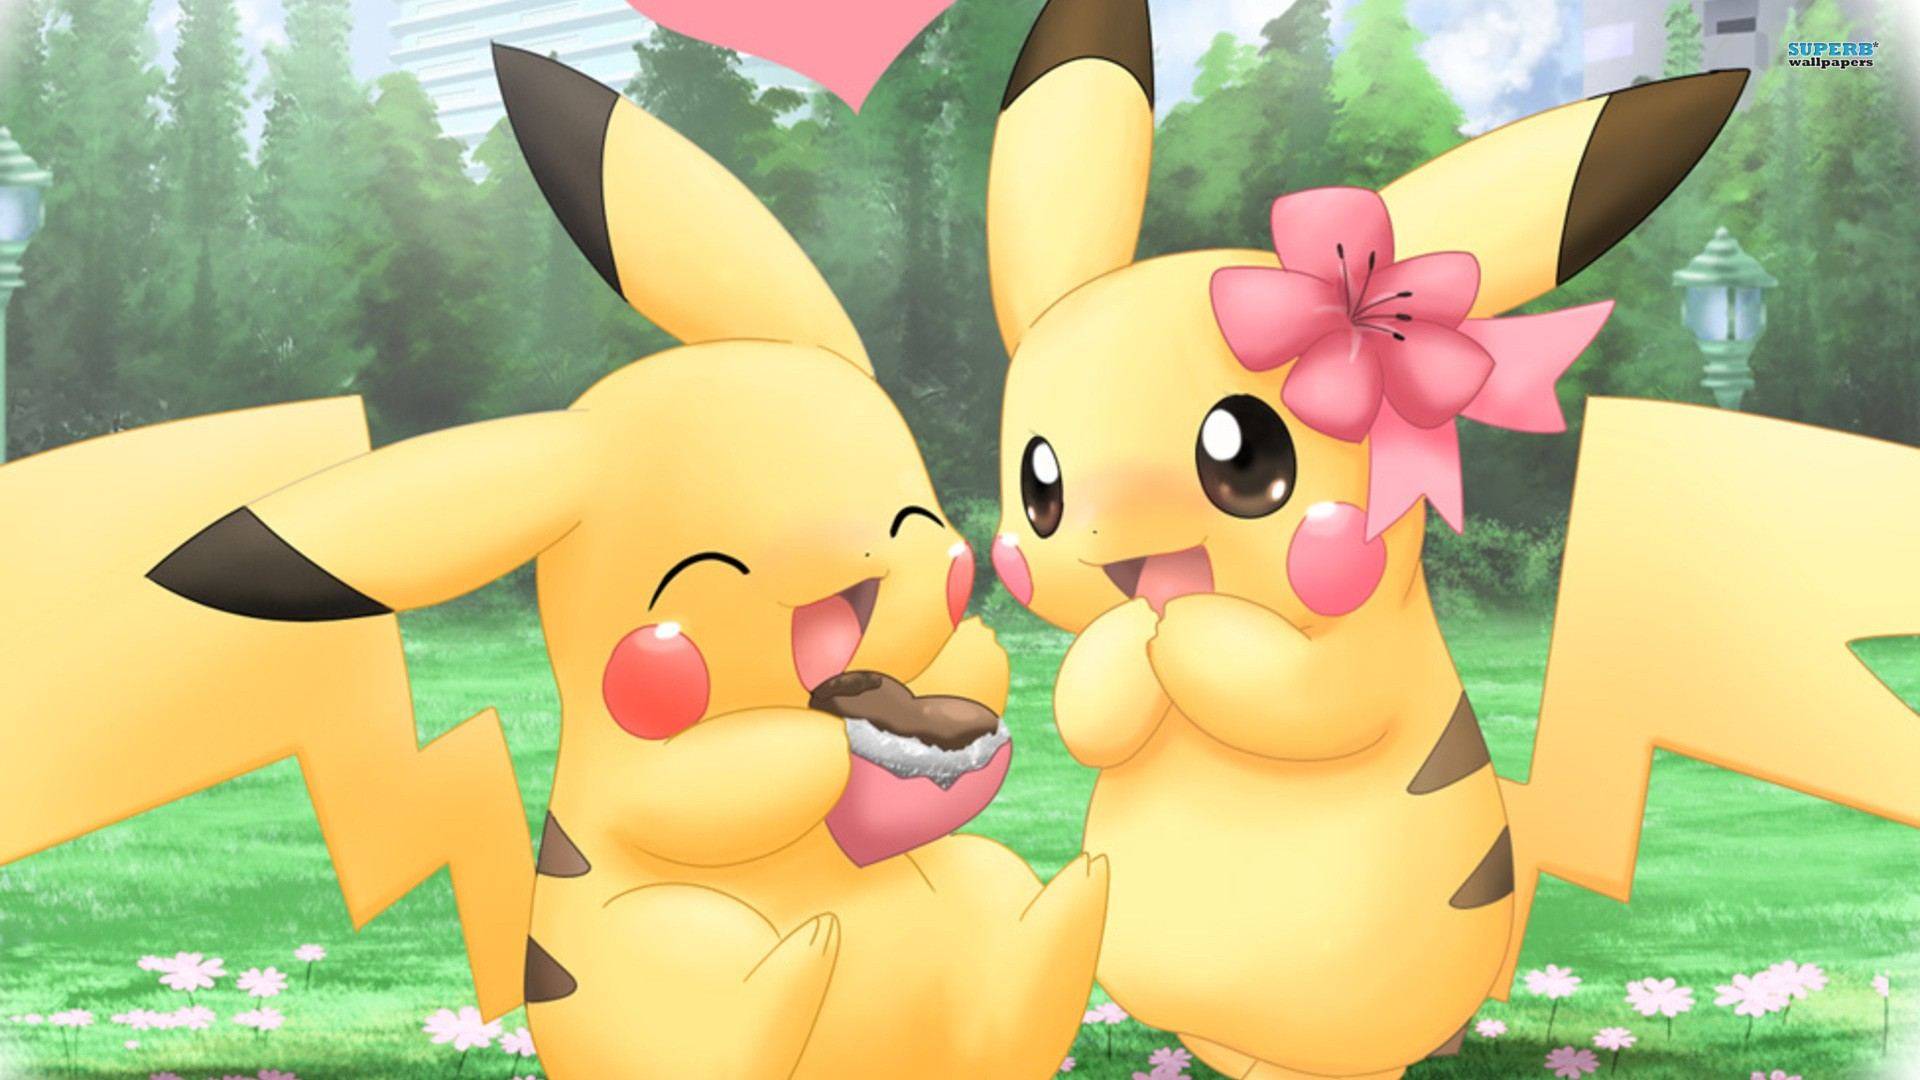 Pikachu Pokemon Cute Couples HD Wallpaper of Cartoon   hdwallpaper2013 1920x1080